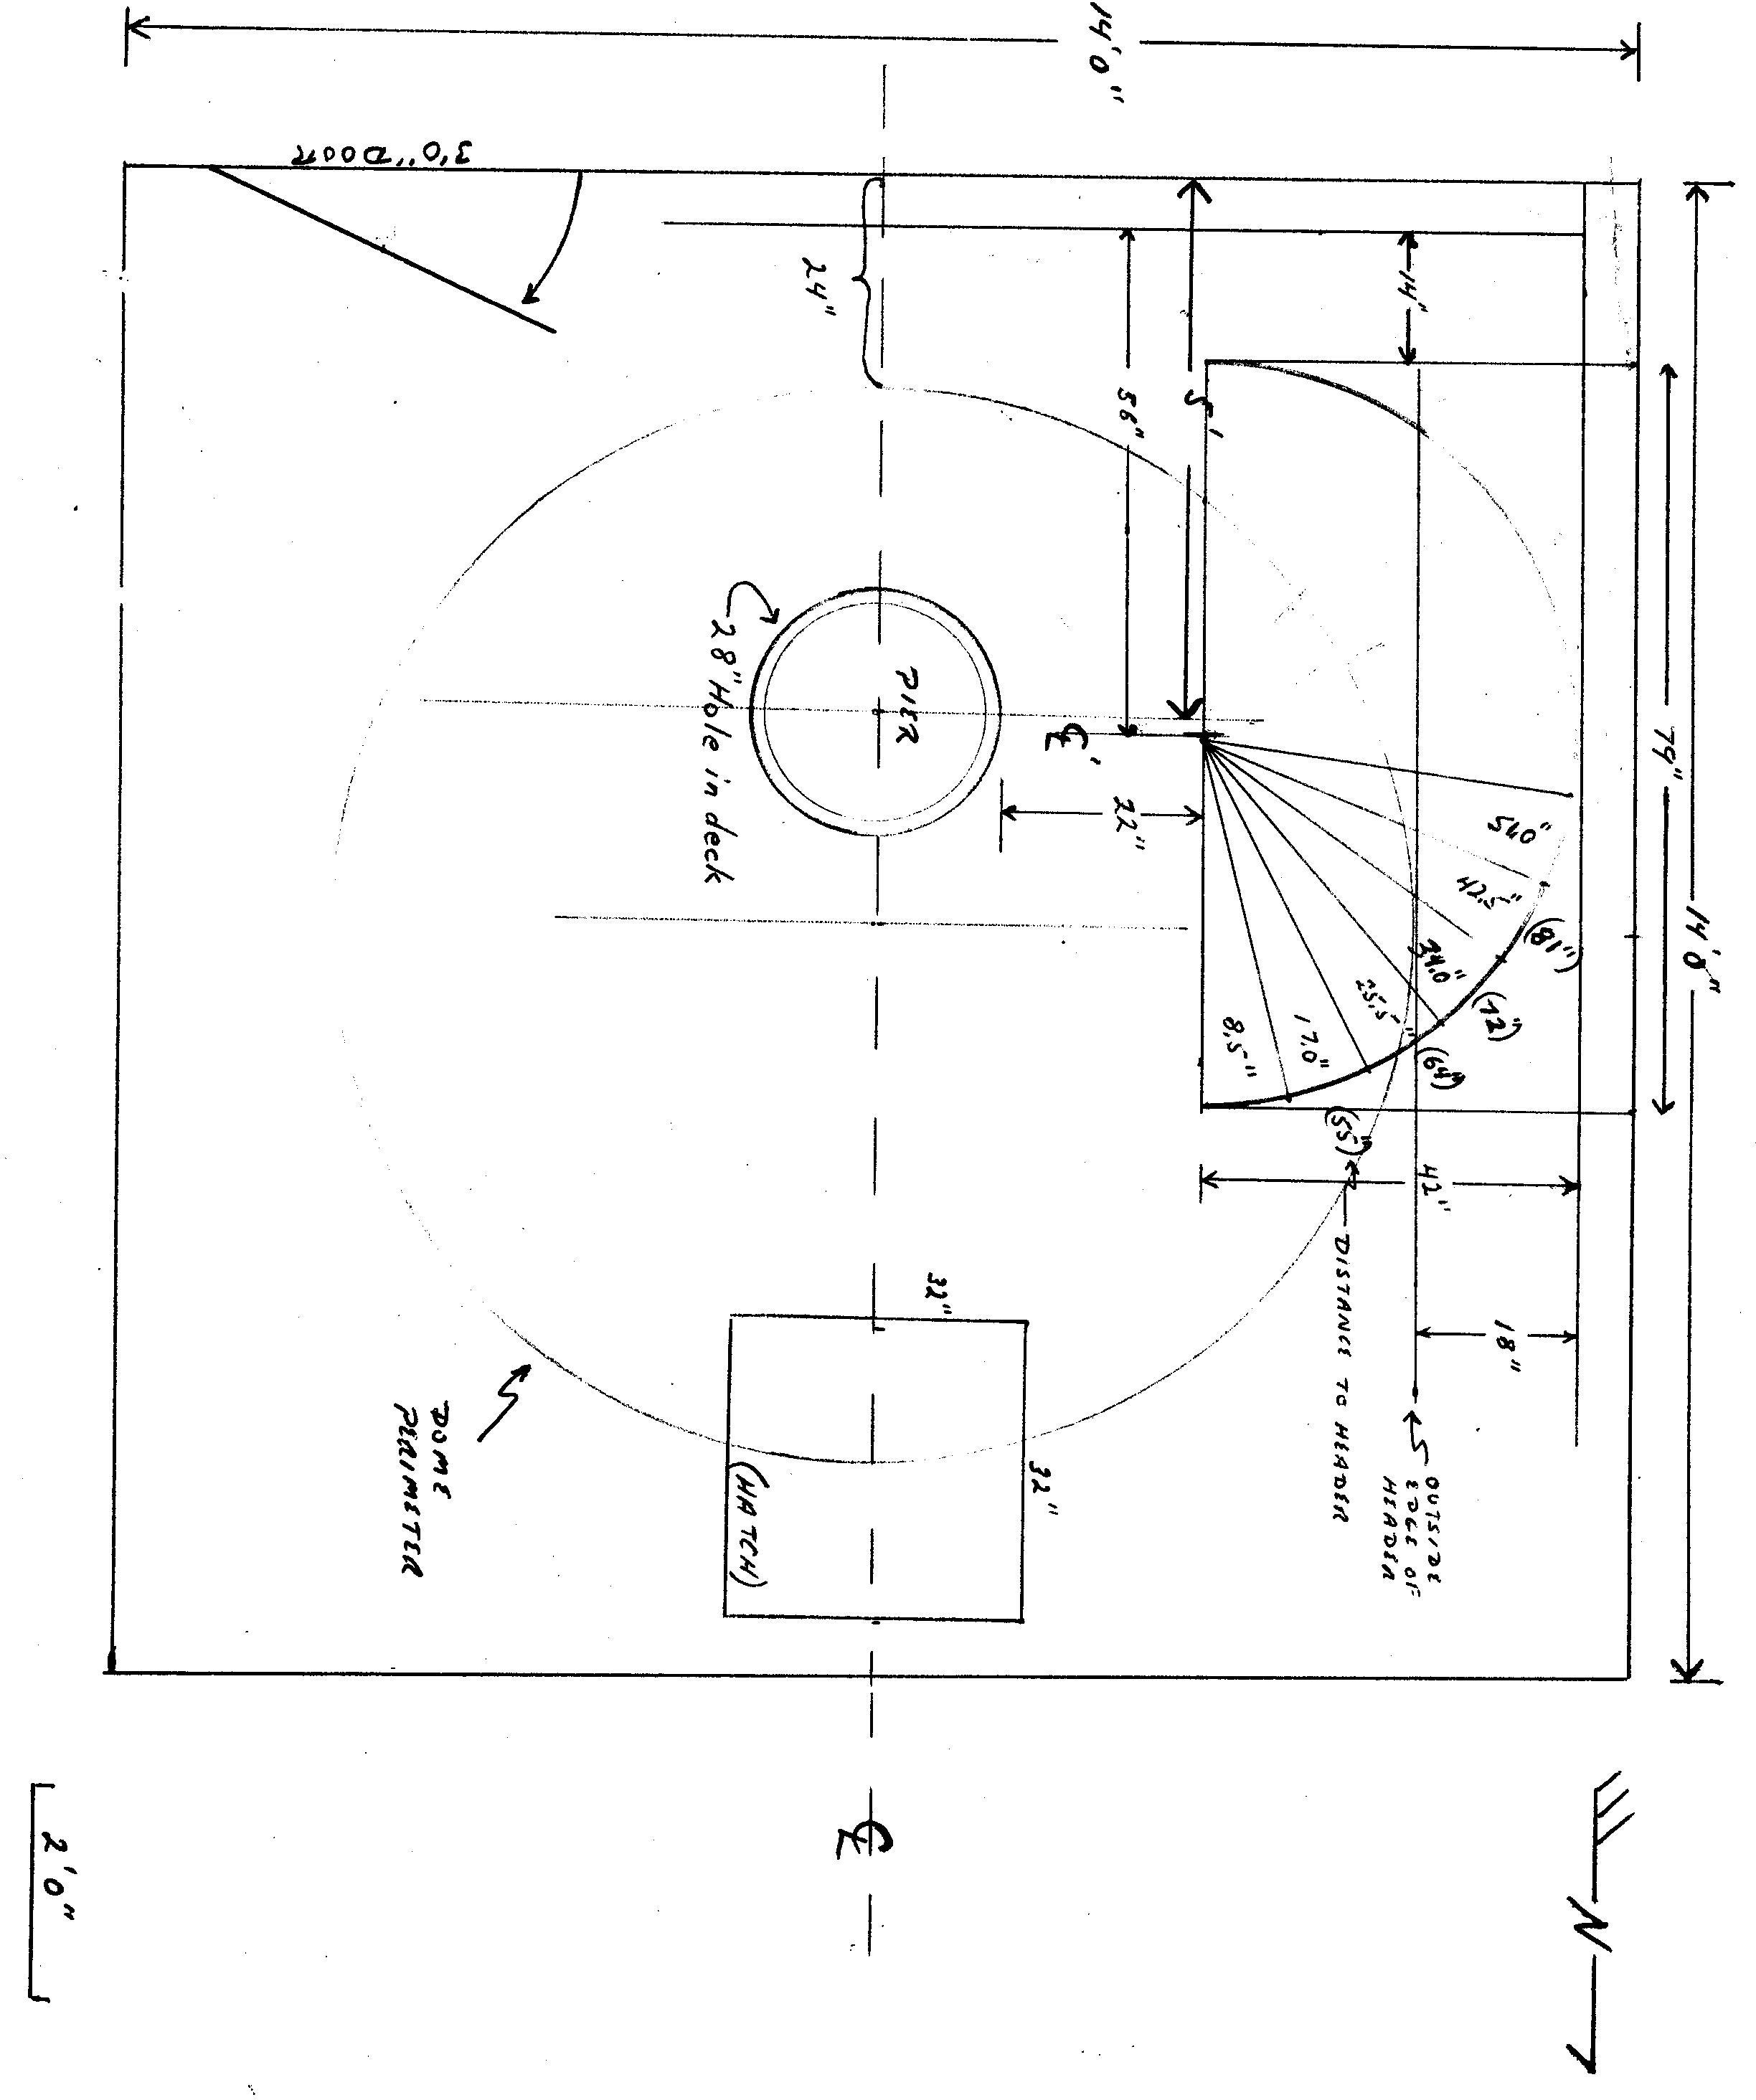 image gallery observatory plans image gallery observatory plans